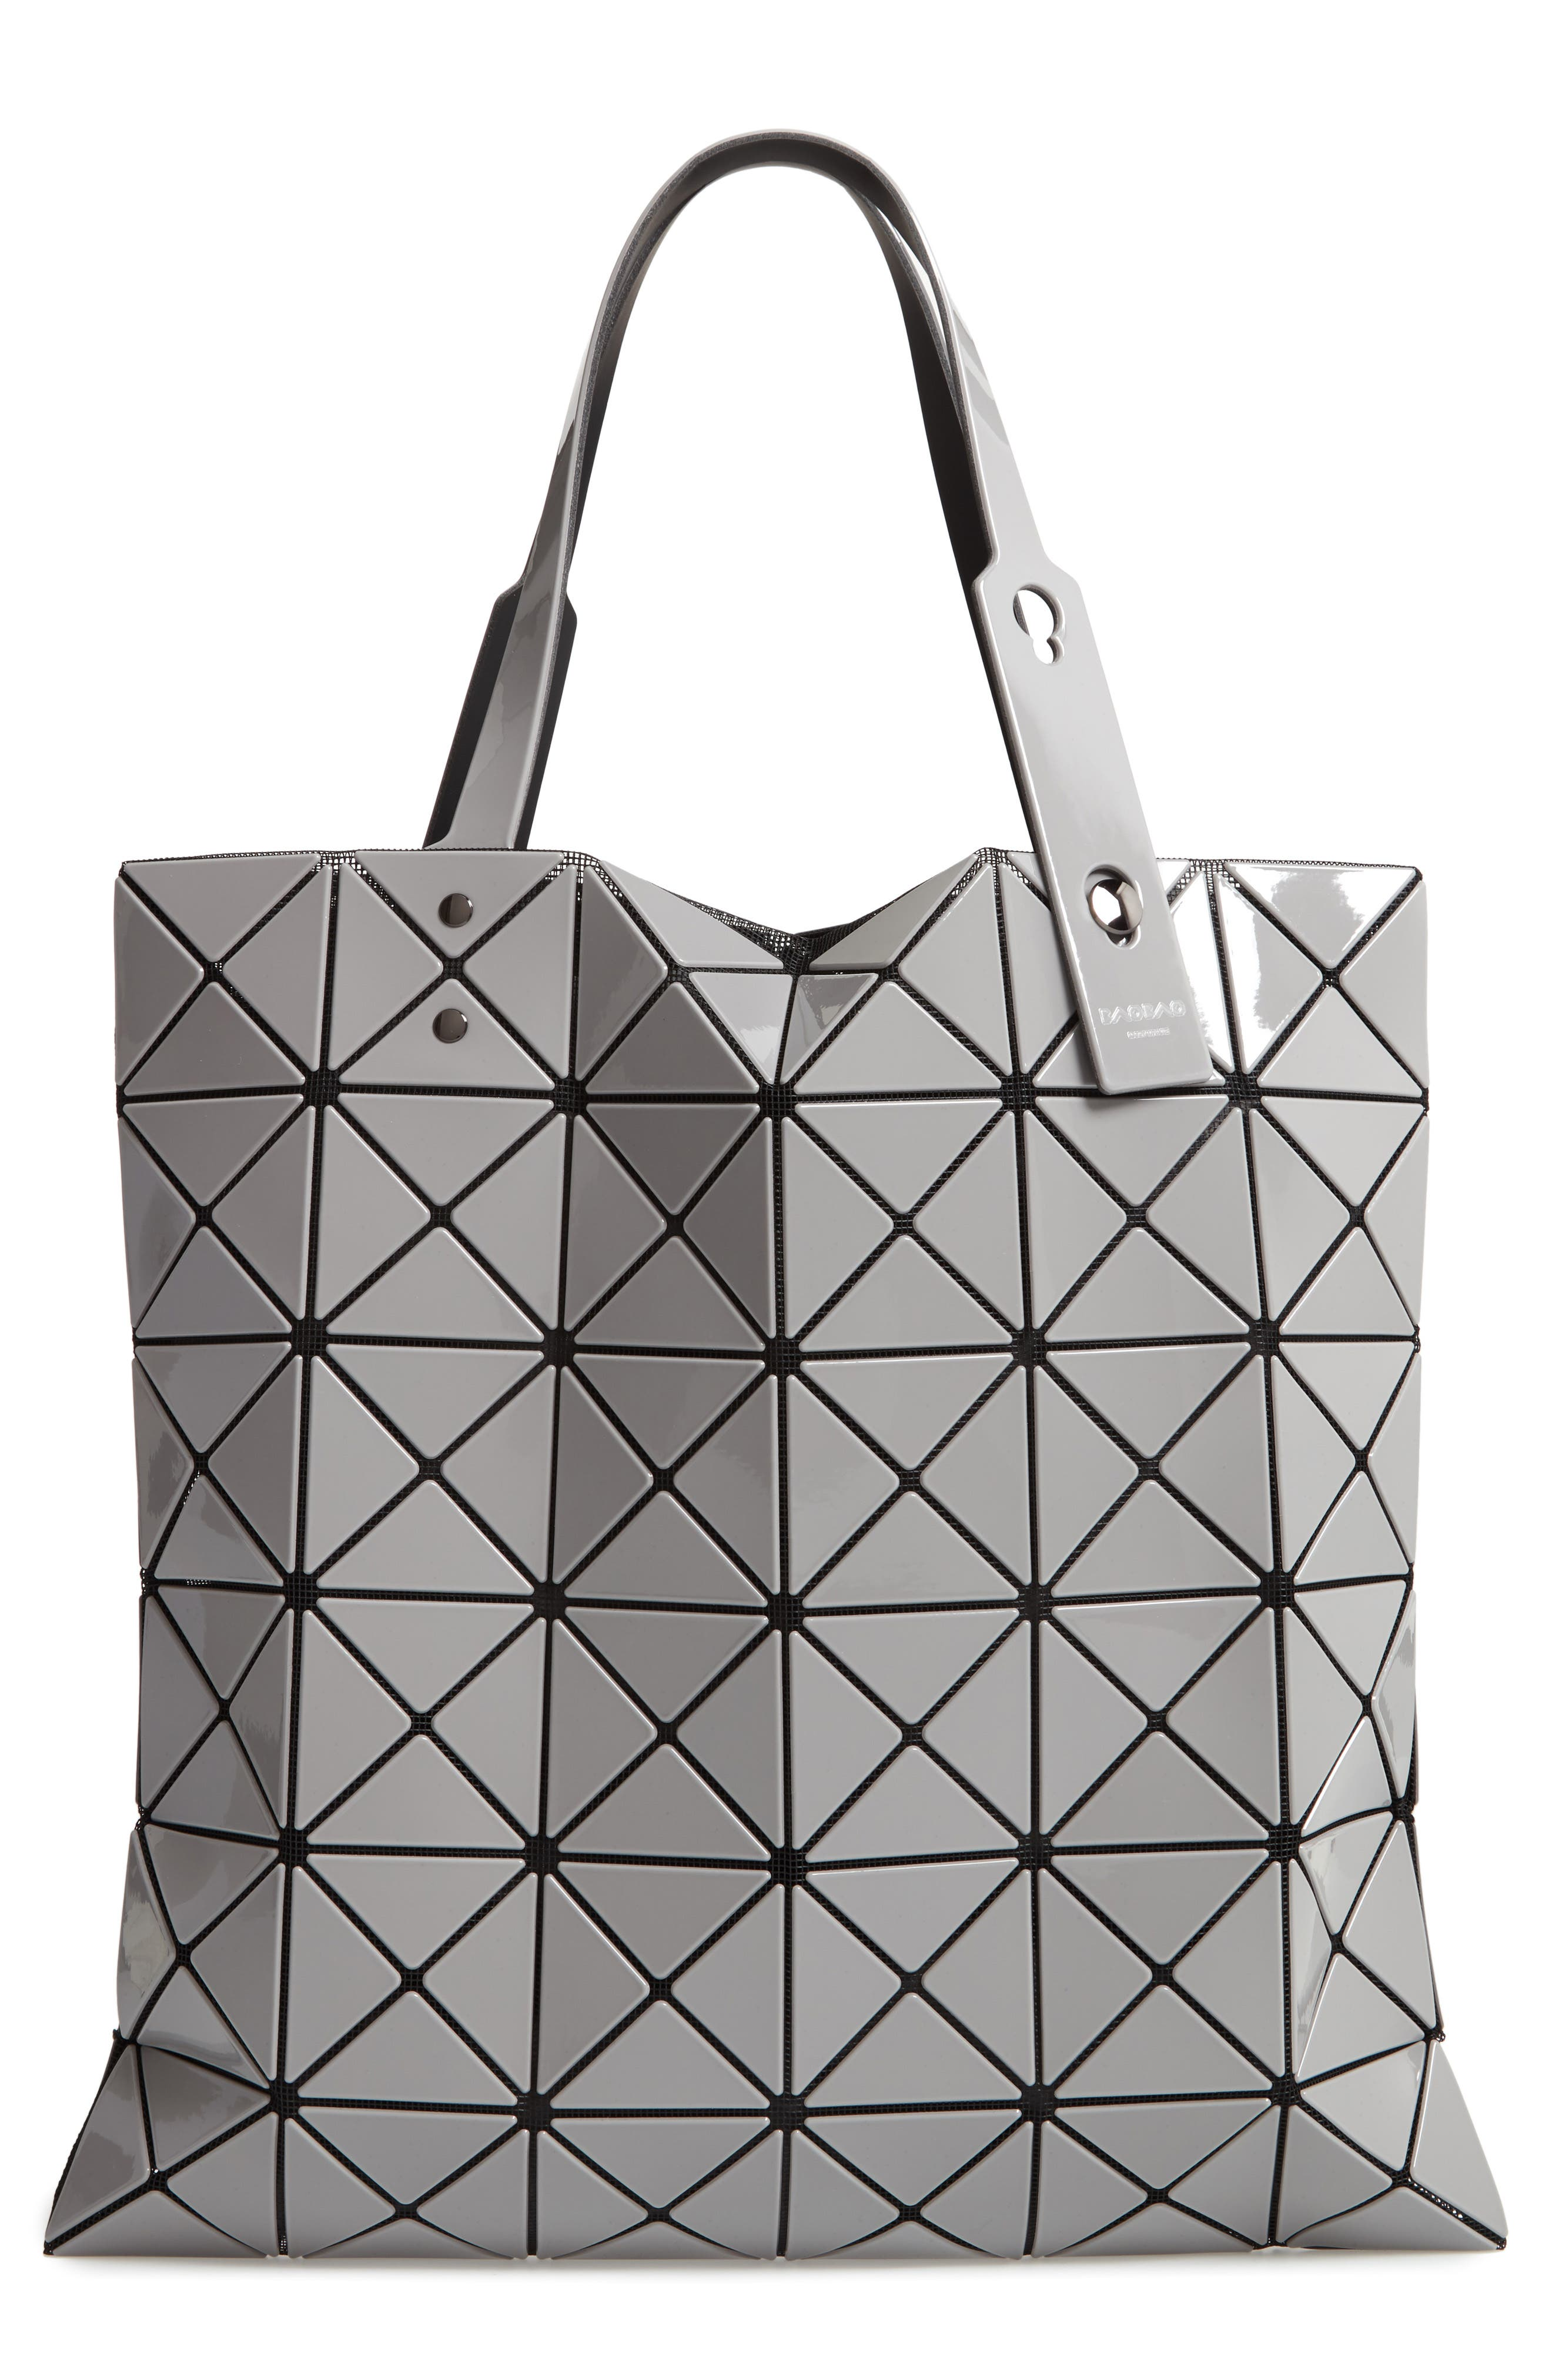 Lucent Two-Tone Tote Bag,                             Main thumbnail 1, color,                             LIGHT GRAY/ CHARCOAL